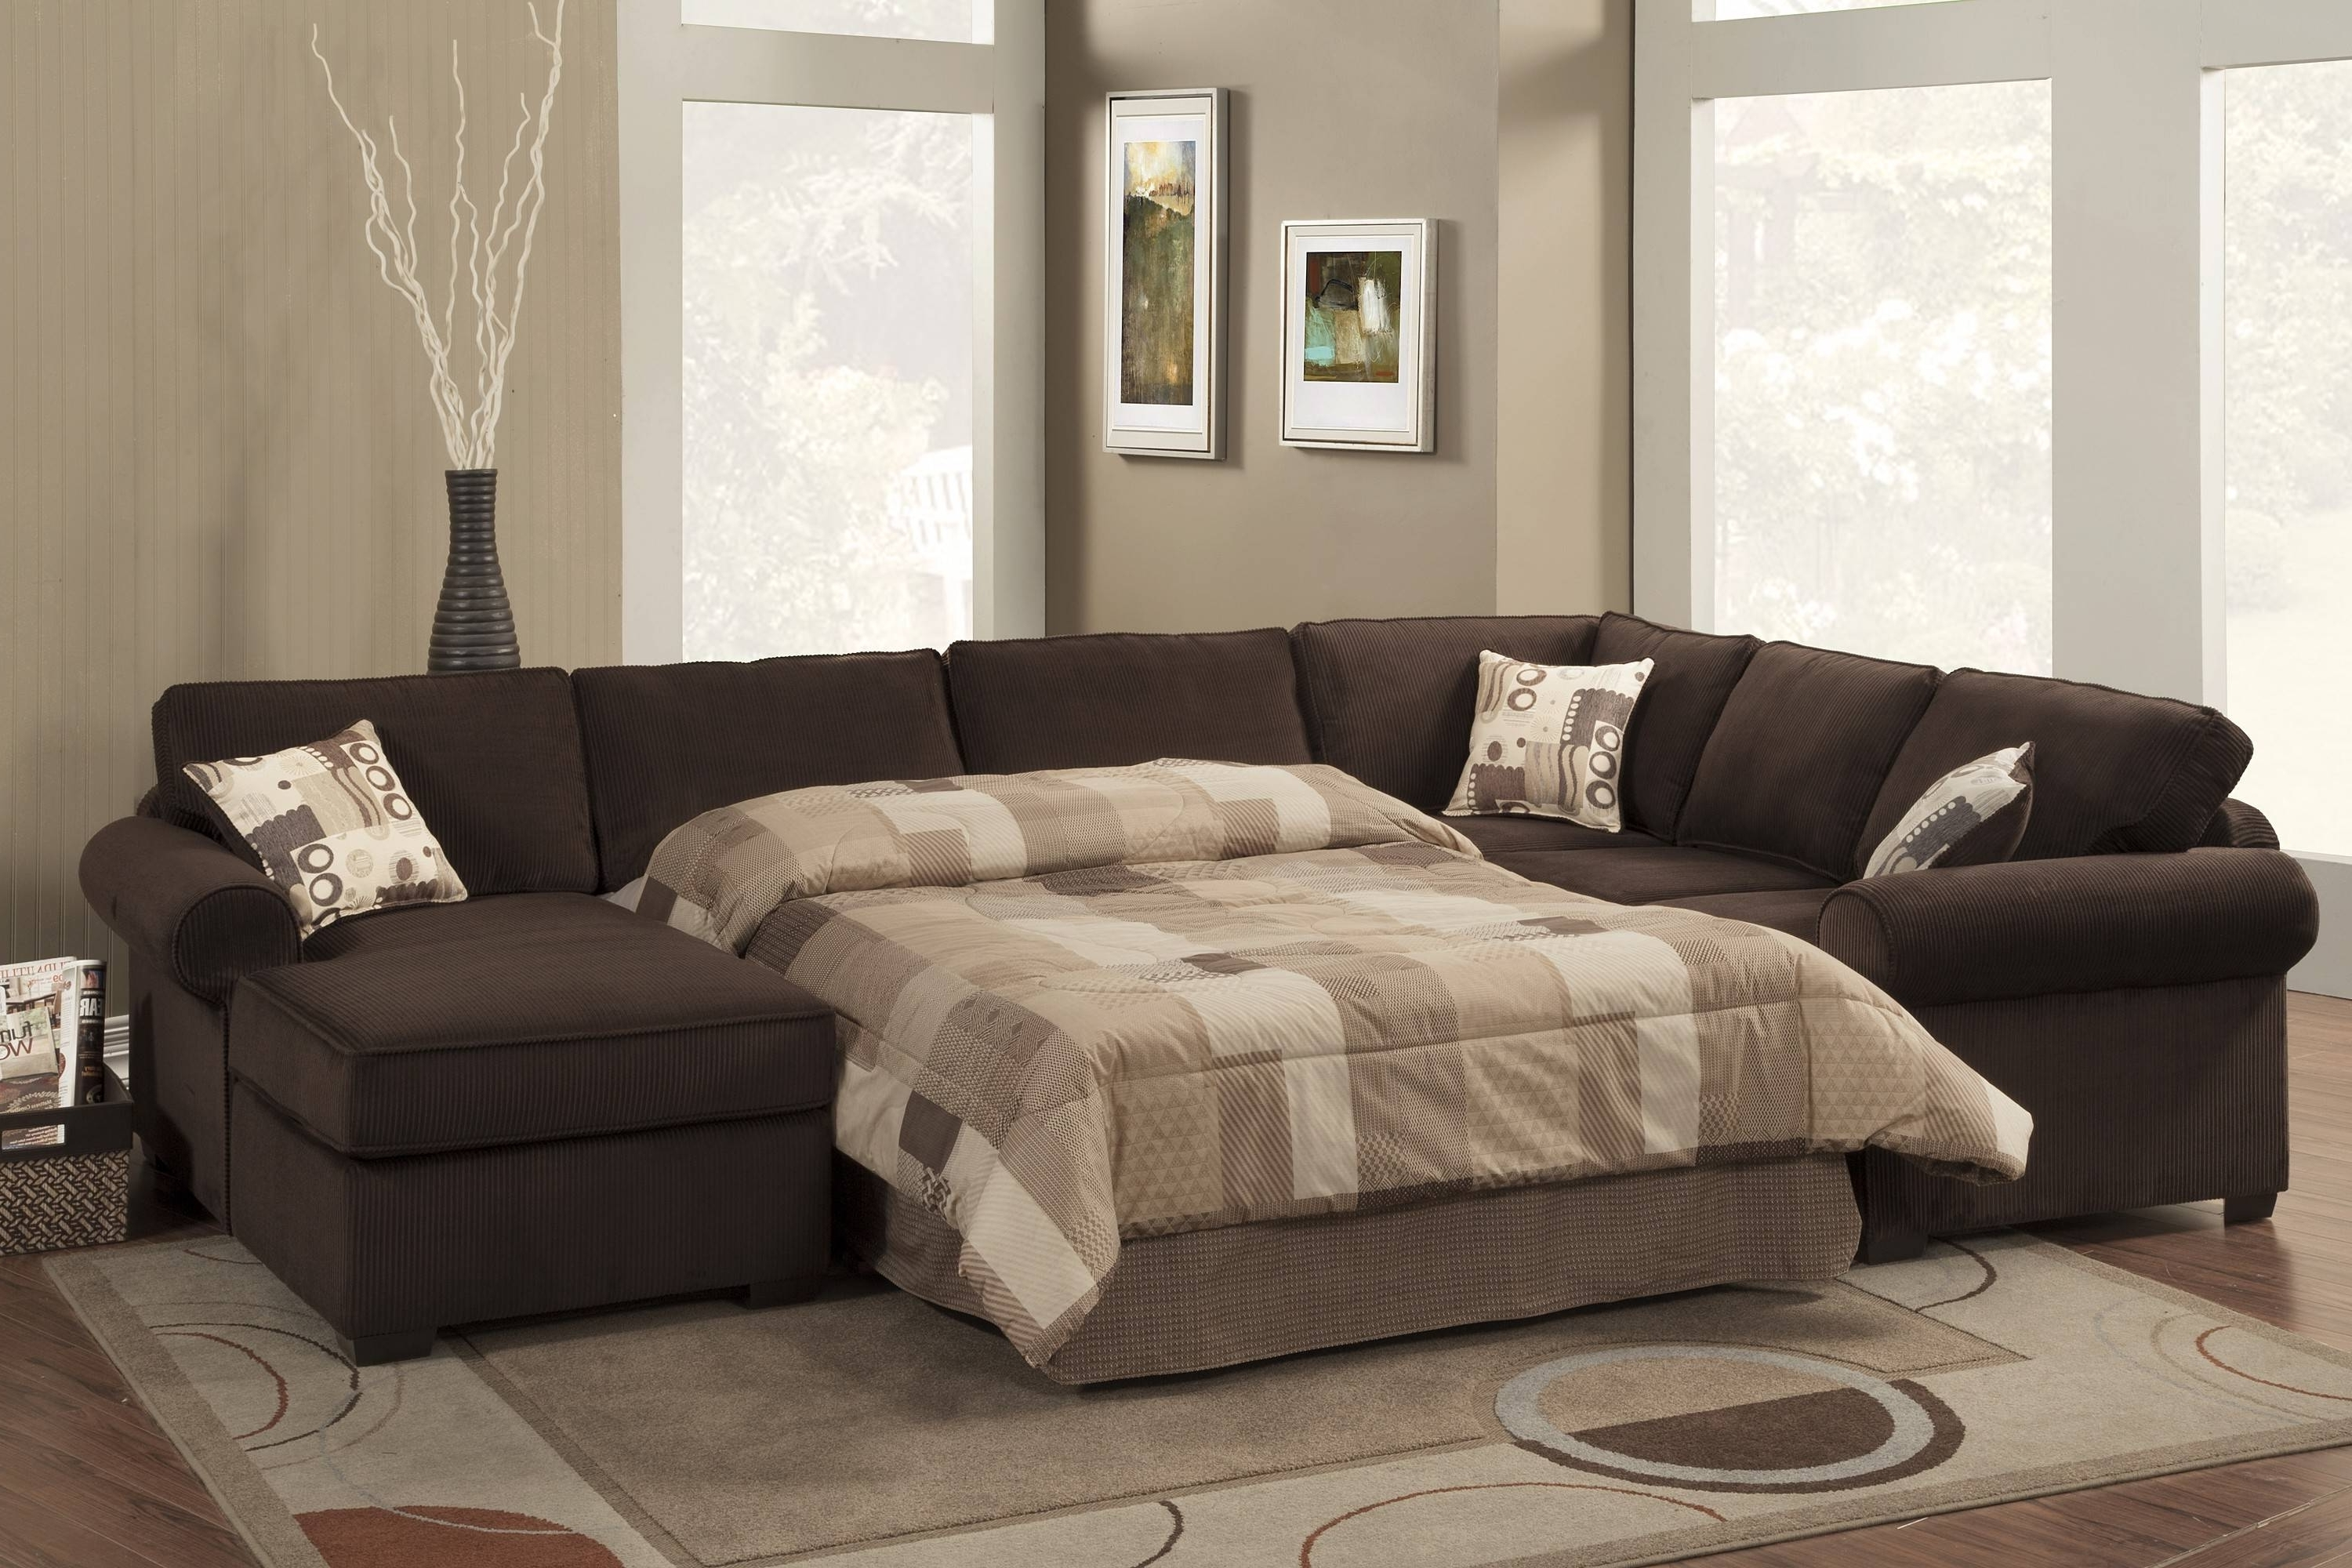 Sectional Sofas Regarding 2017 Cheap Sectional Sofas With Wide Sectional Couch With New Sectional (View 6 of 15)